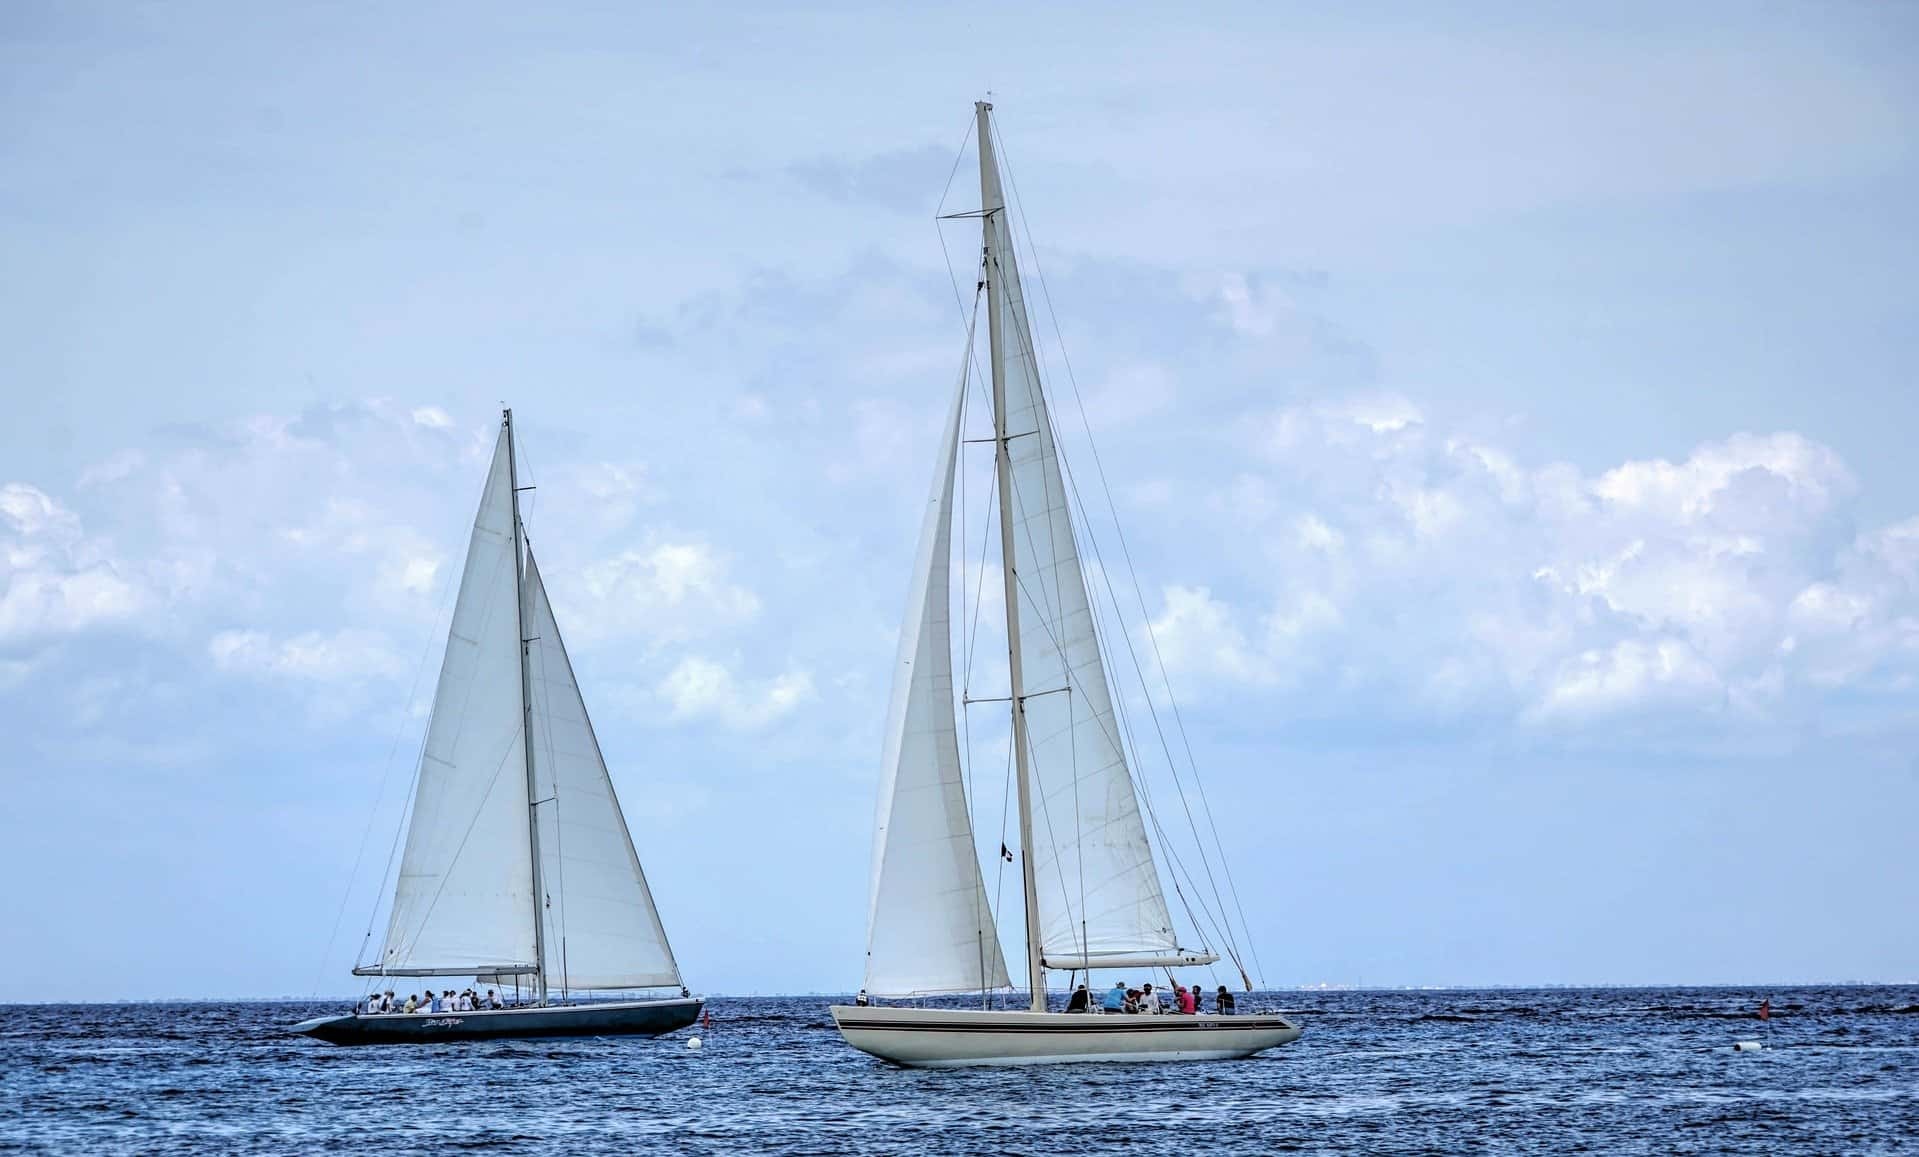 Counseling and Therapy Services in Mission Viejo - two sail boats